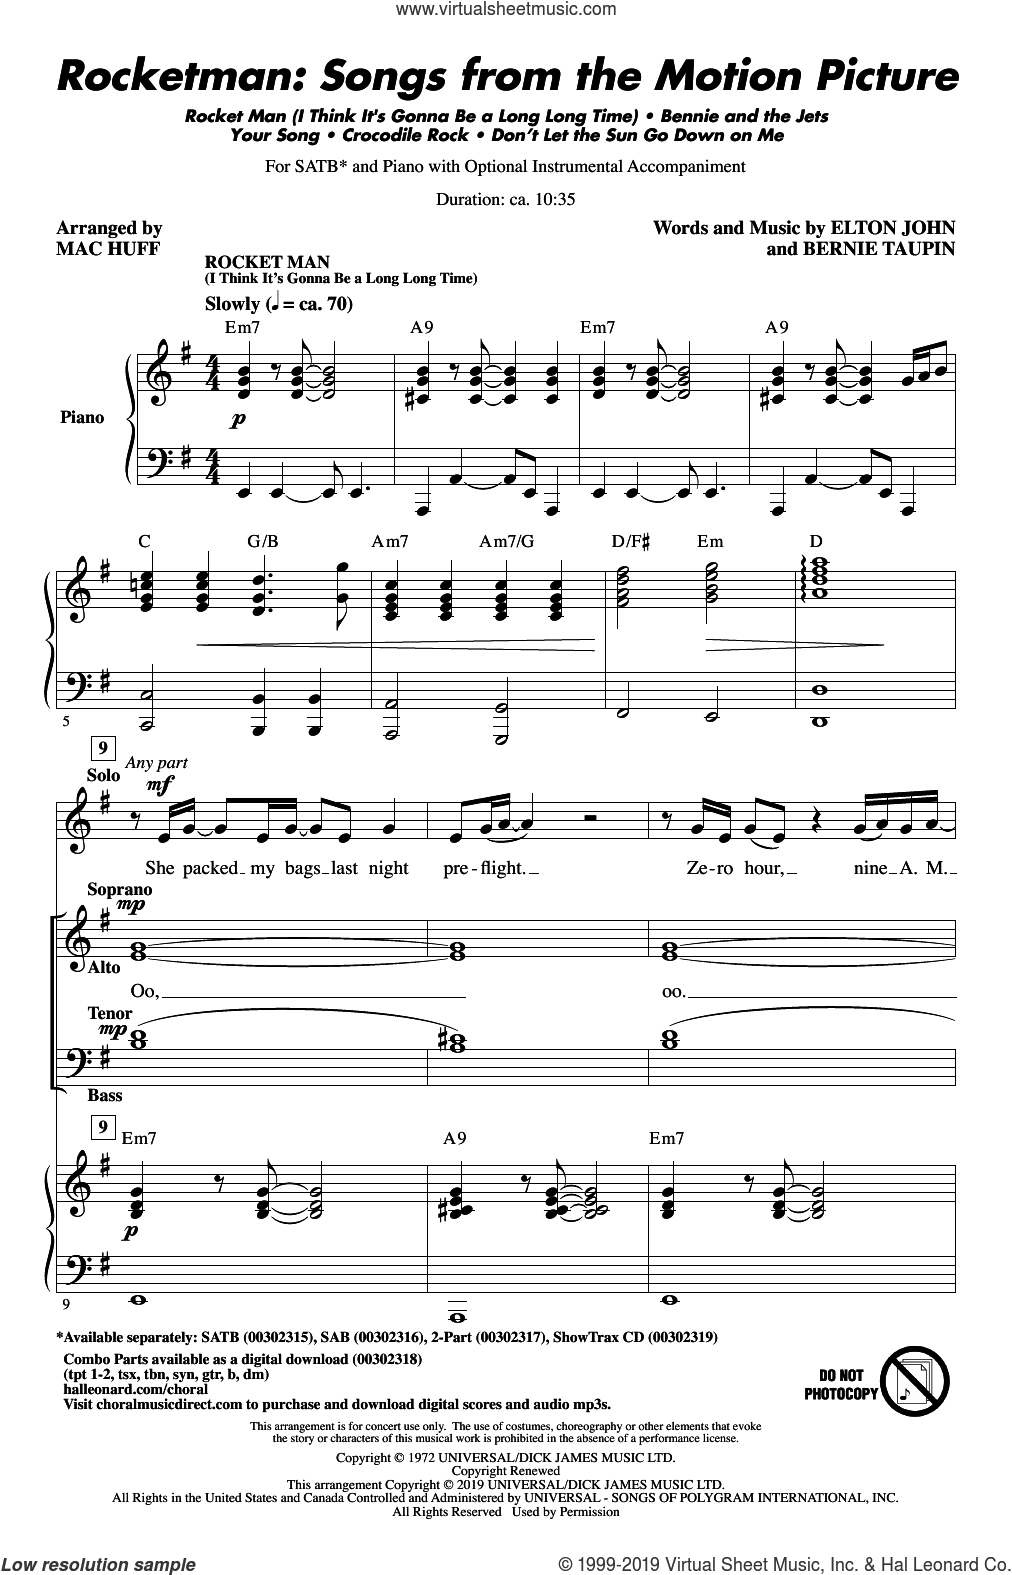 Rocketman: Songs from the Motion Picture (arr. Mac Huff) sheet music for choir (SATB: soprano, alto, tenor, bass) by Elton John, Mac Huff and Bernie Taupin, intermediate skill level